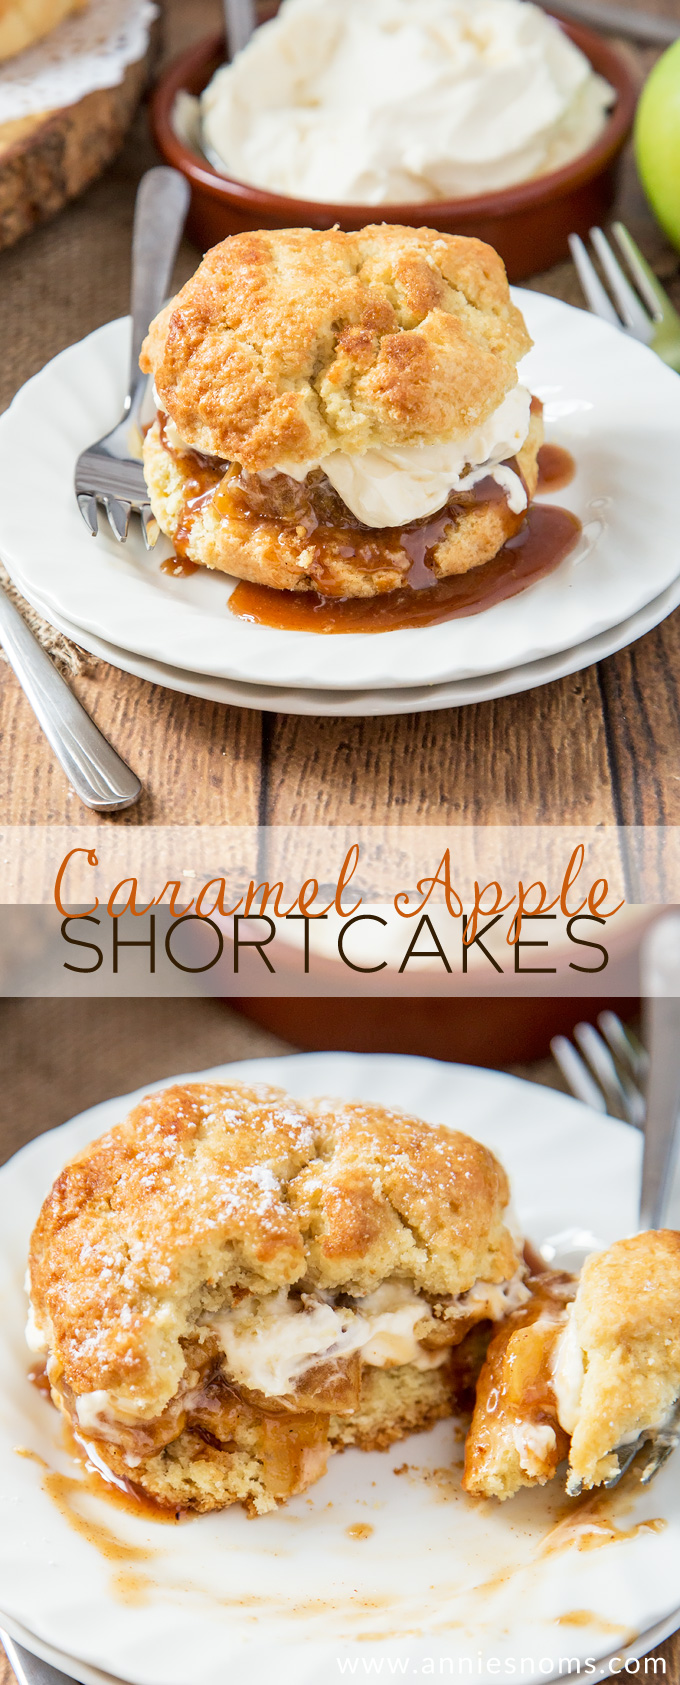 Flaky, buttery shortcakes filled with tender apples cooked in caramel sauce and topped with sweetened whipped cream. One seriously decadent, yet addictive dessert!